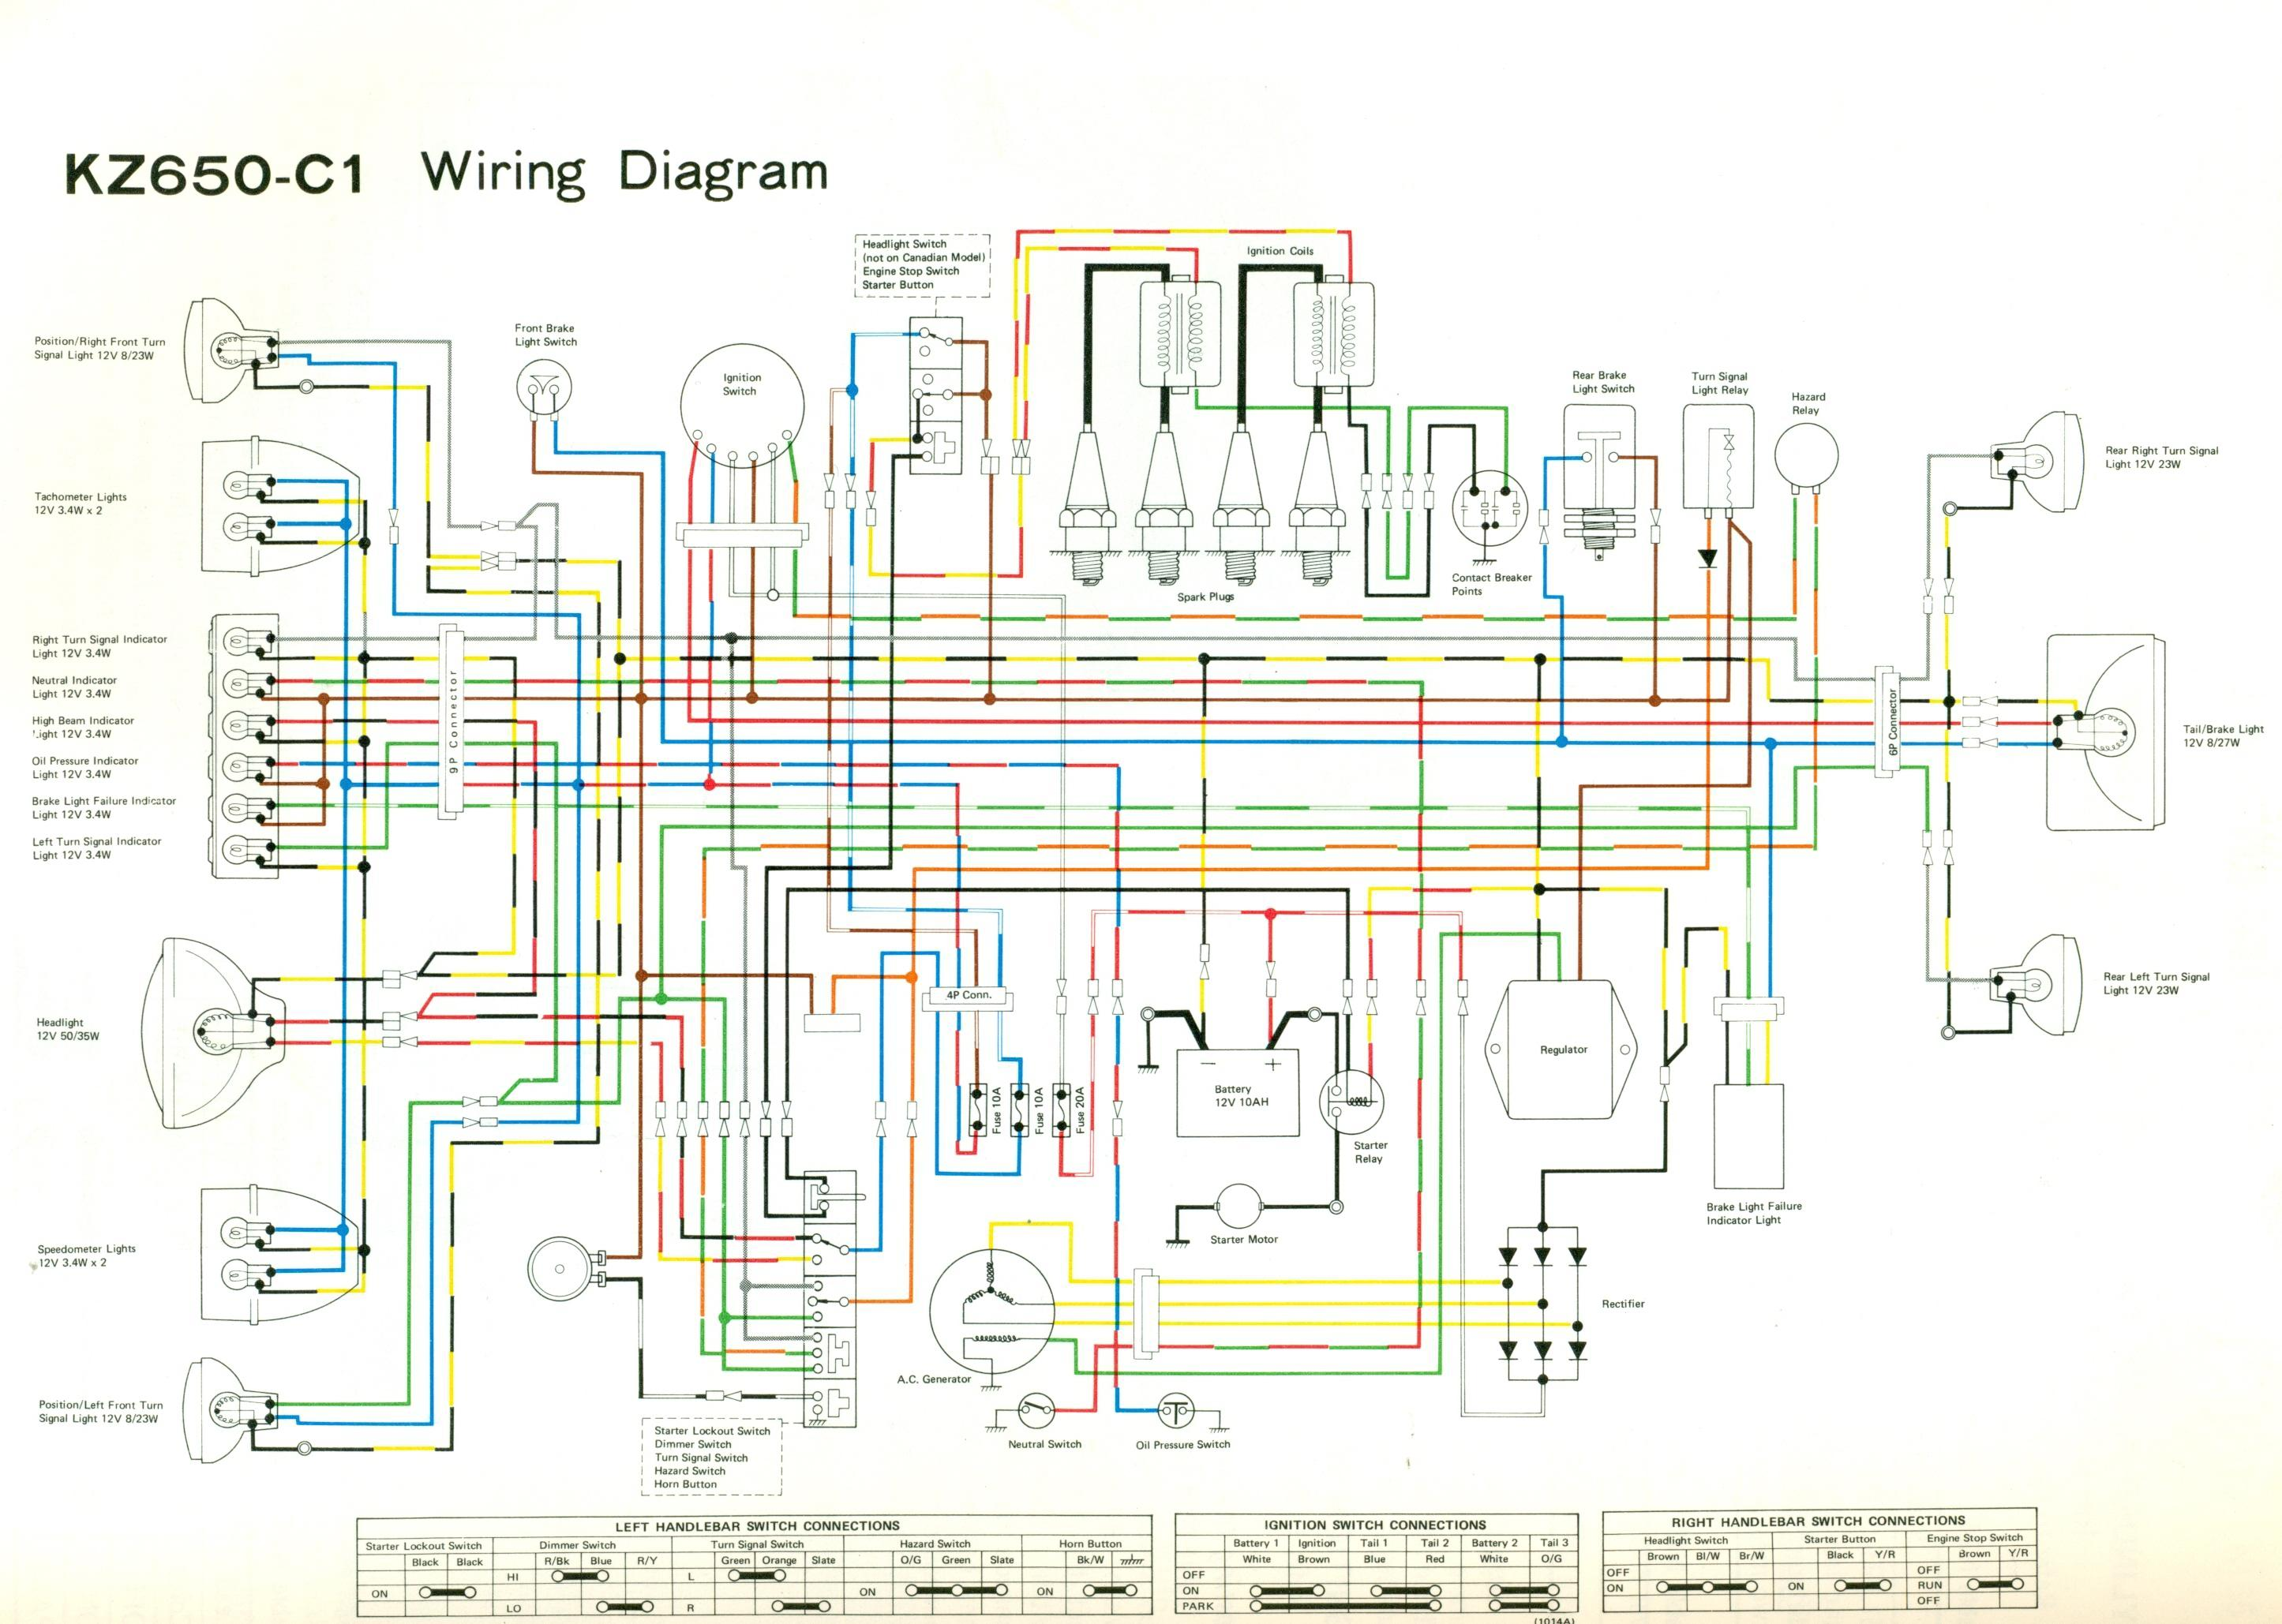 Kawasaki Ac Wiring Diagrams Kawasaki Wiring Diagrams Instruction – Kawasaki Prairie 700 Engine Diagram